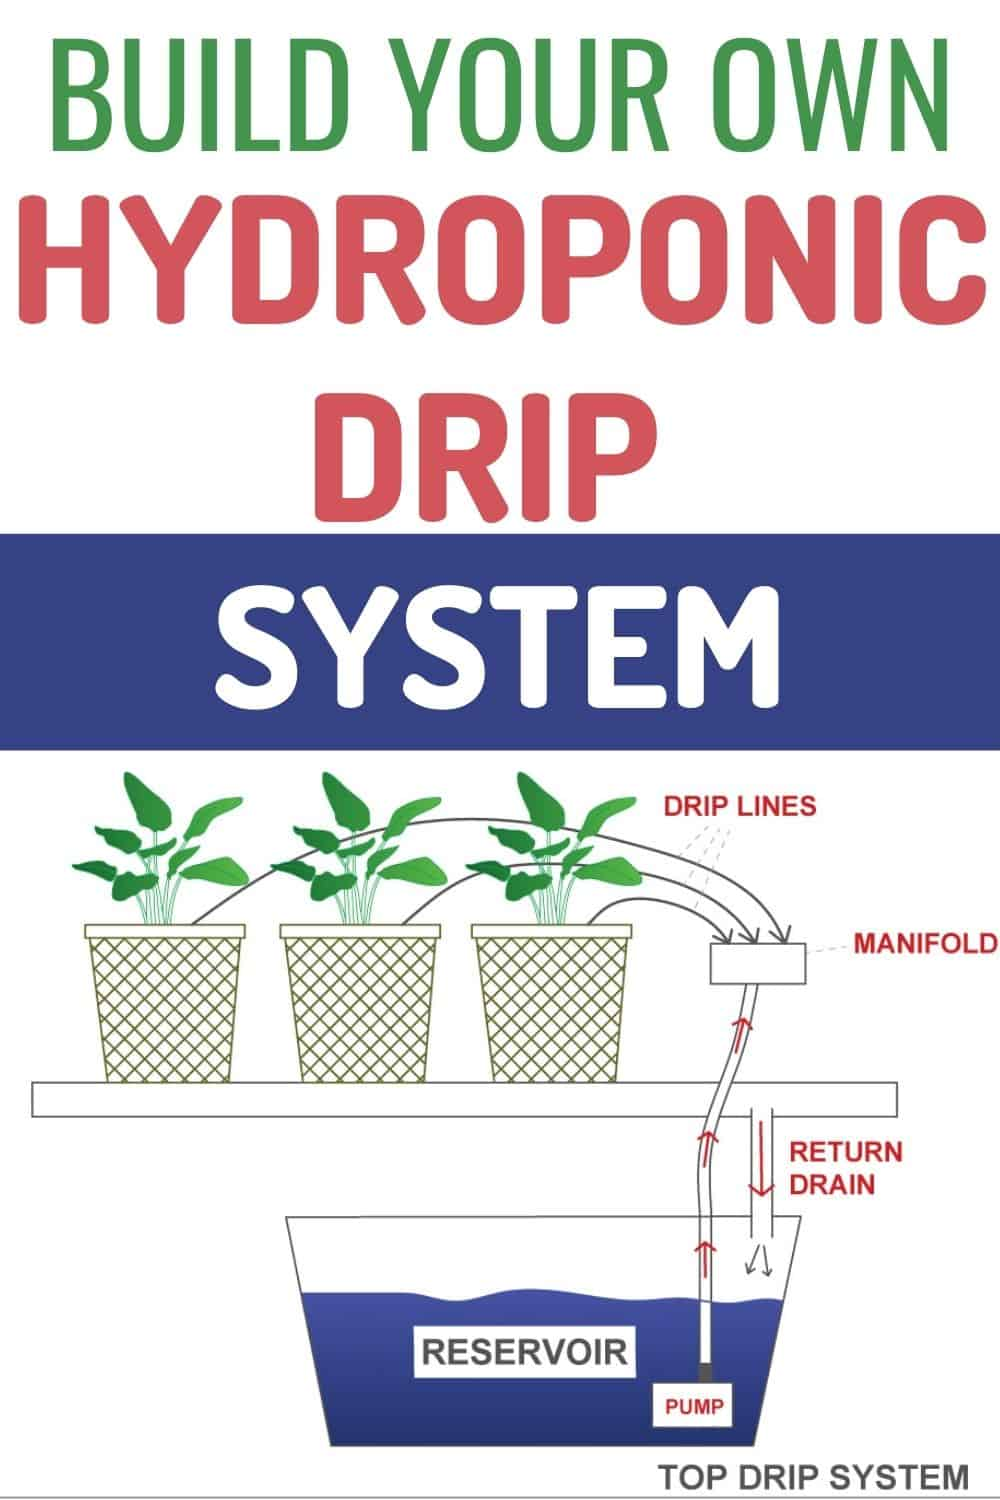 Build your own hydroponic drip system